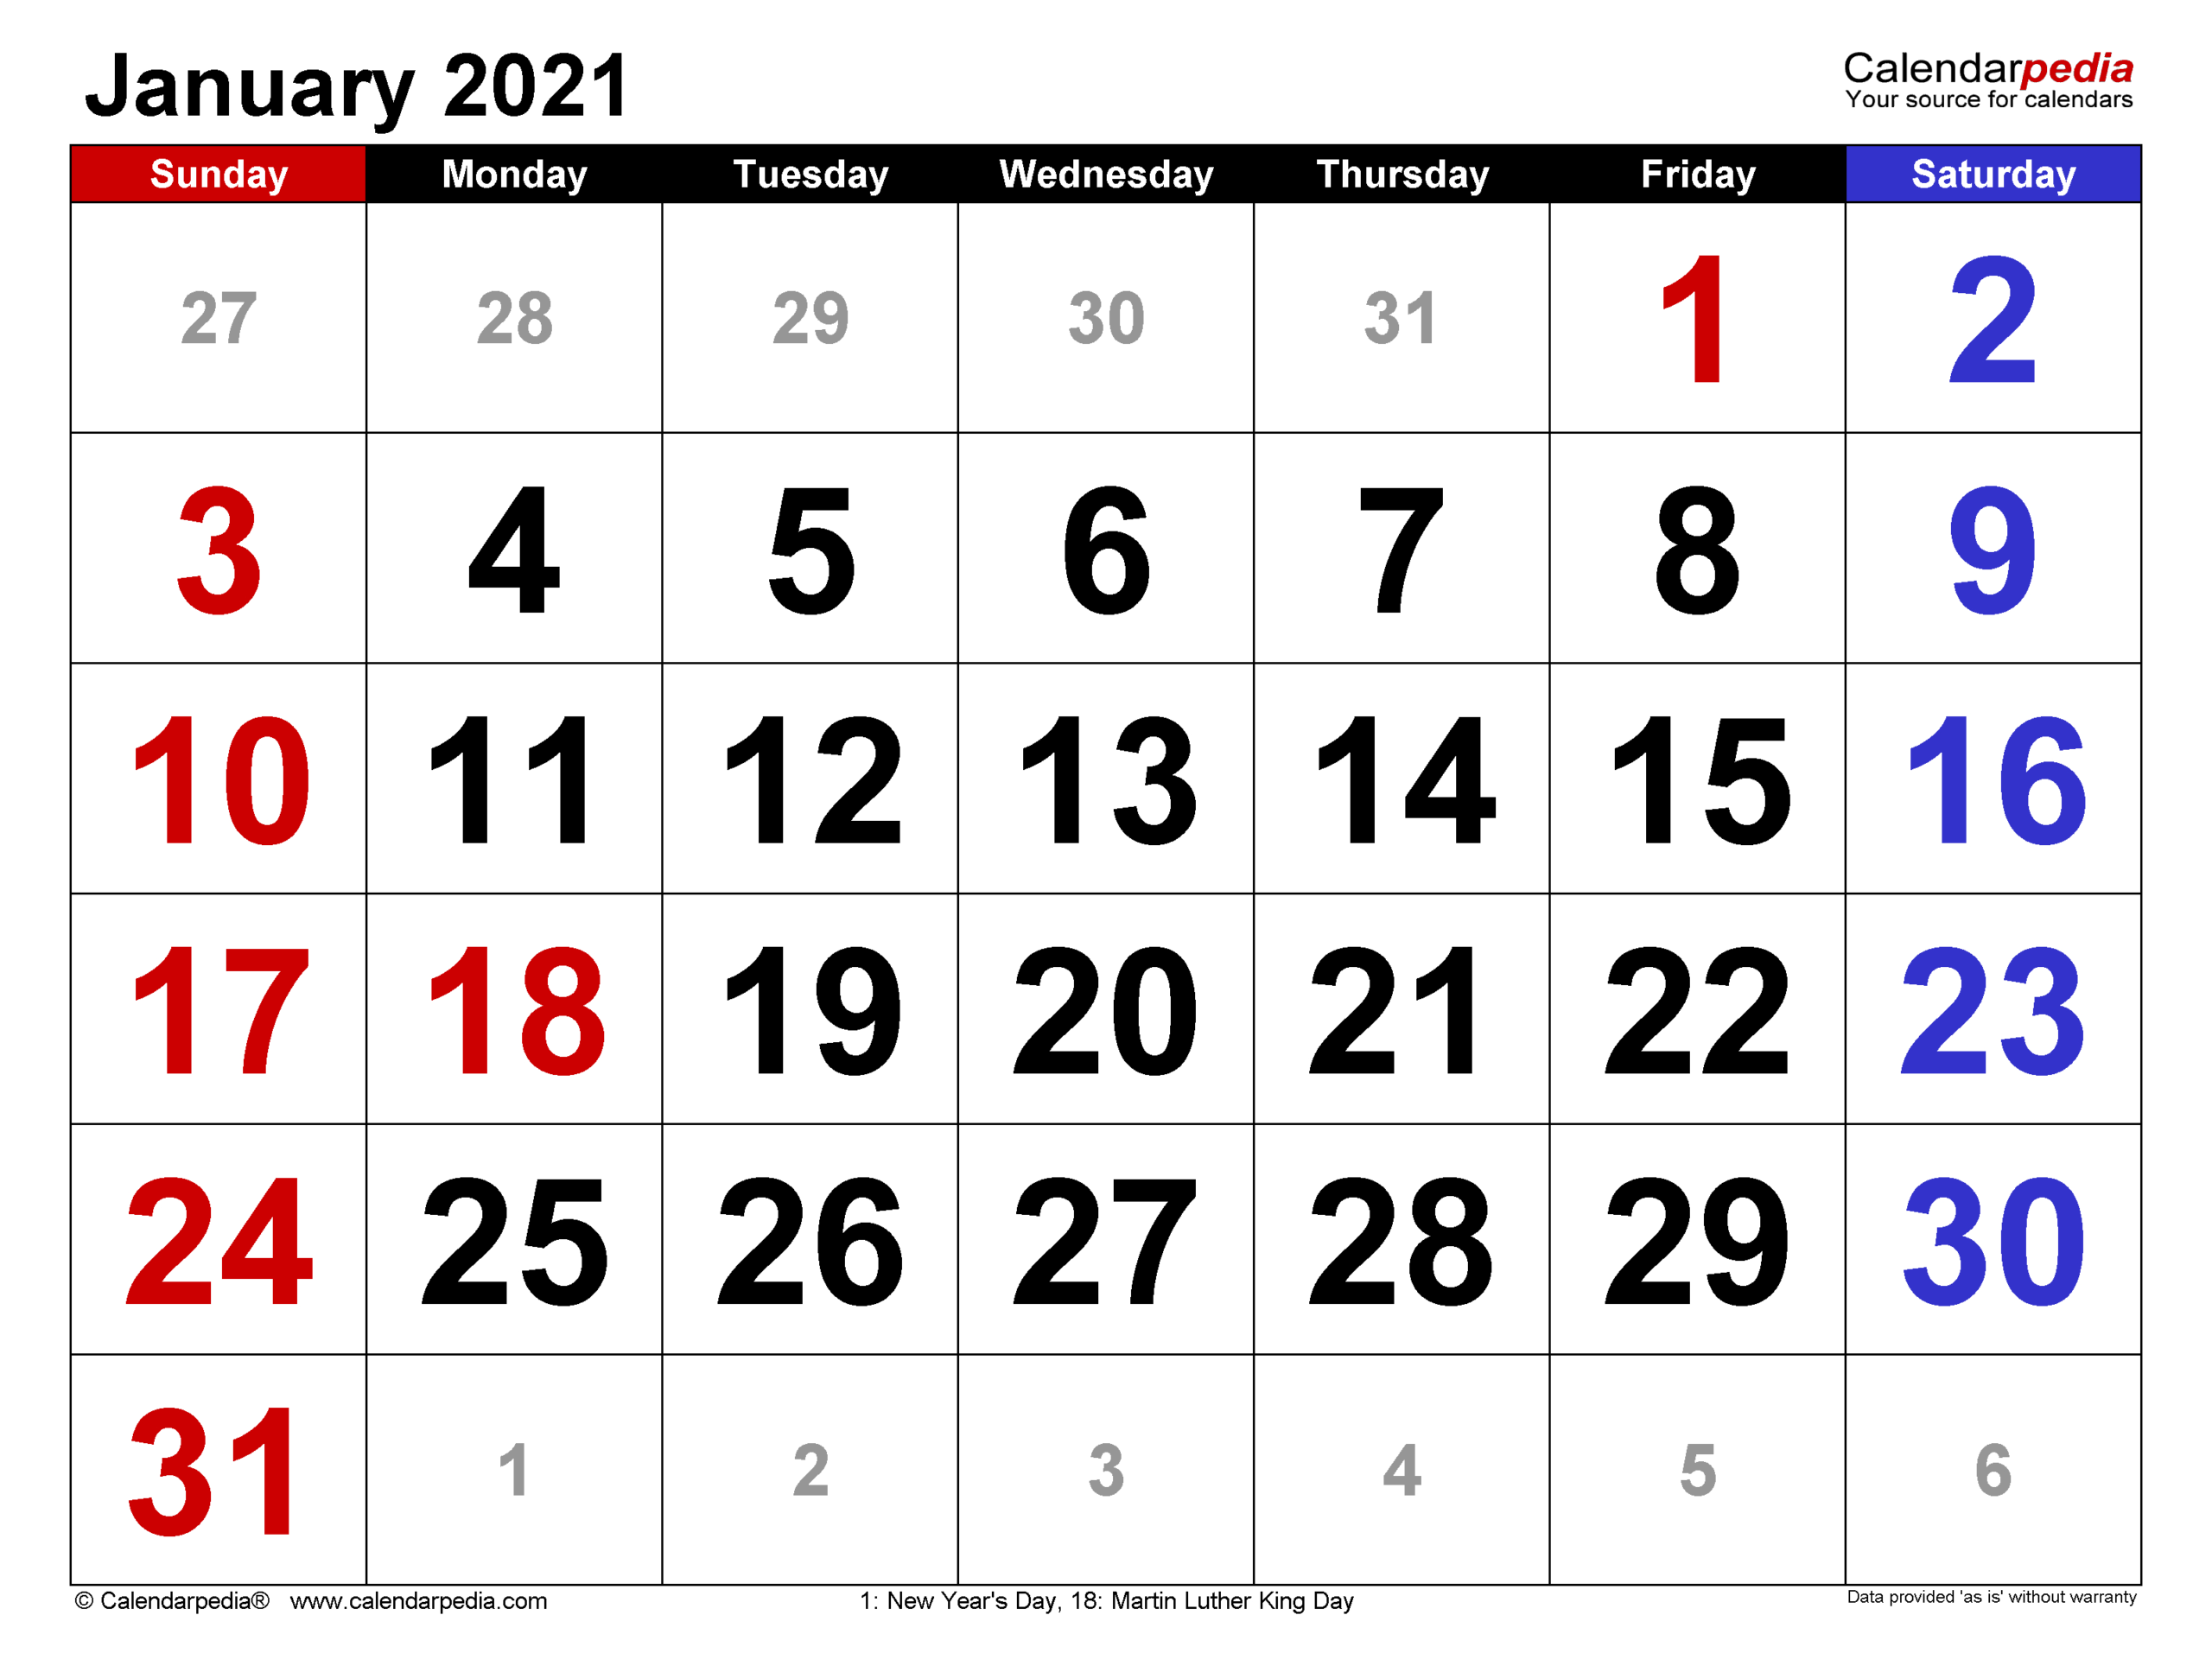 January 2021 Calendar | Templates For Word, Excel And Pdf inside Shift Schedule Jan 2021